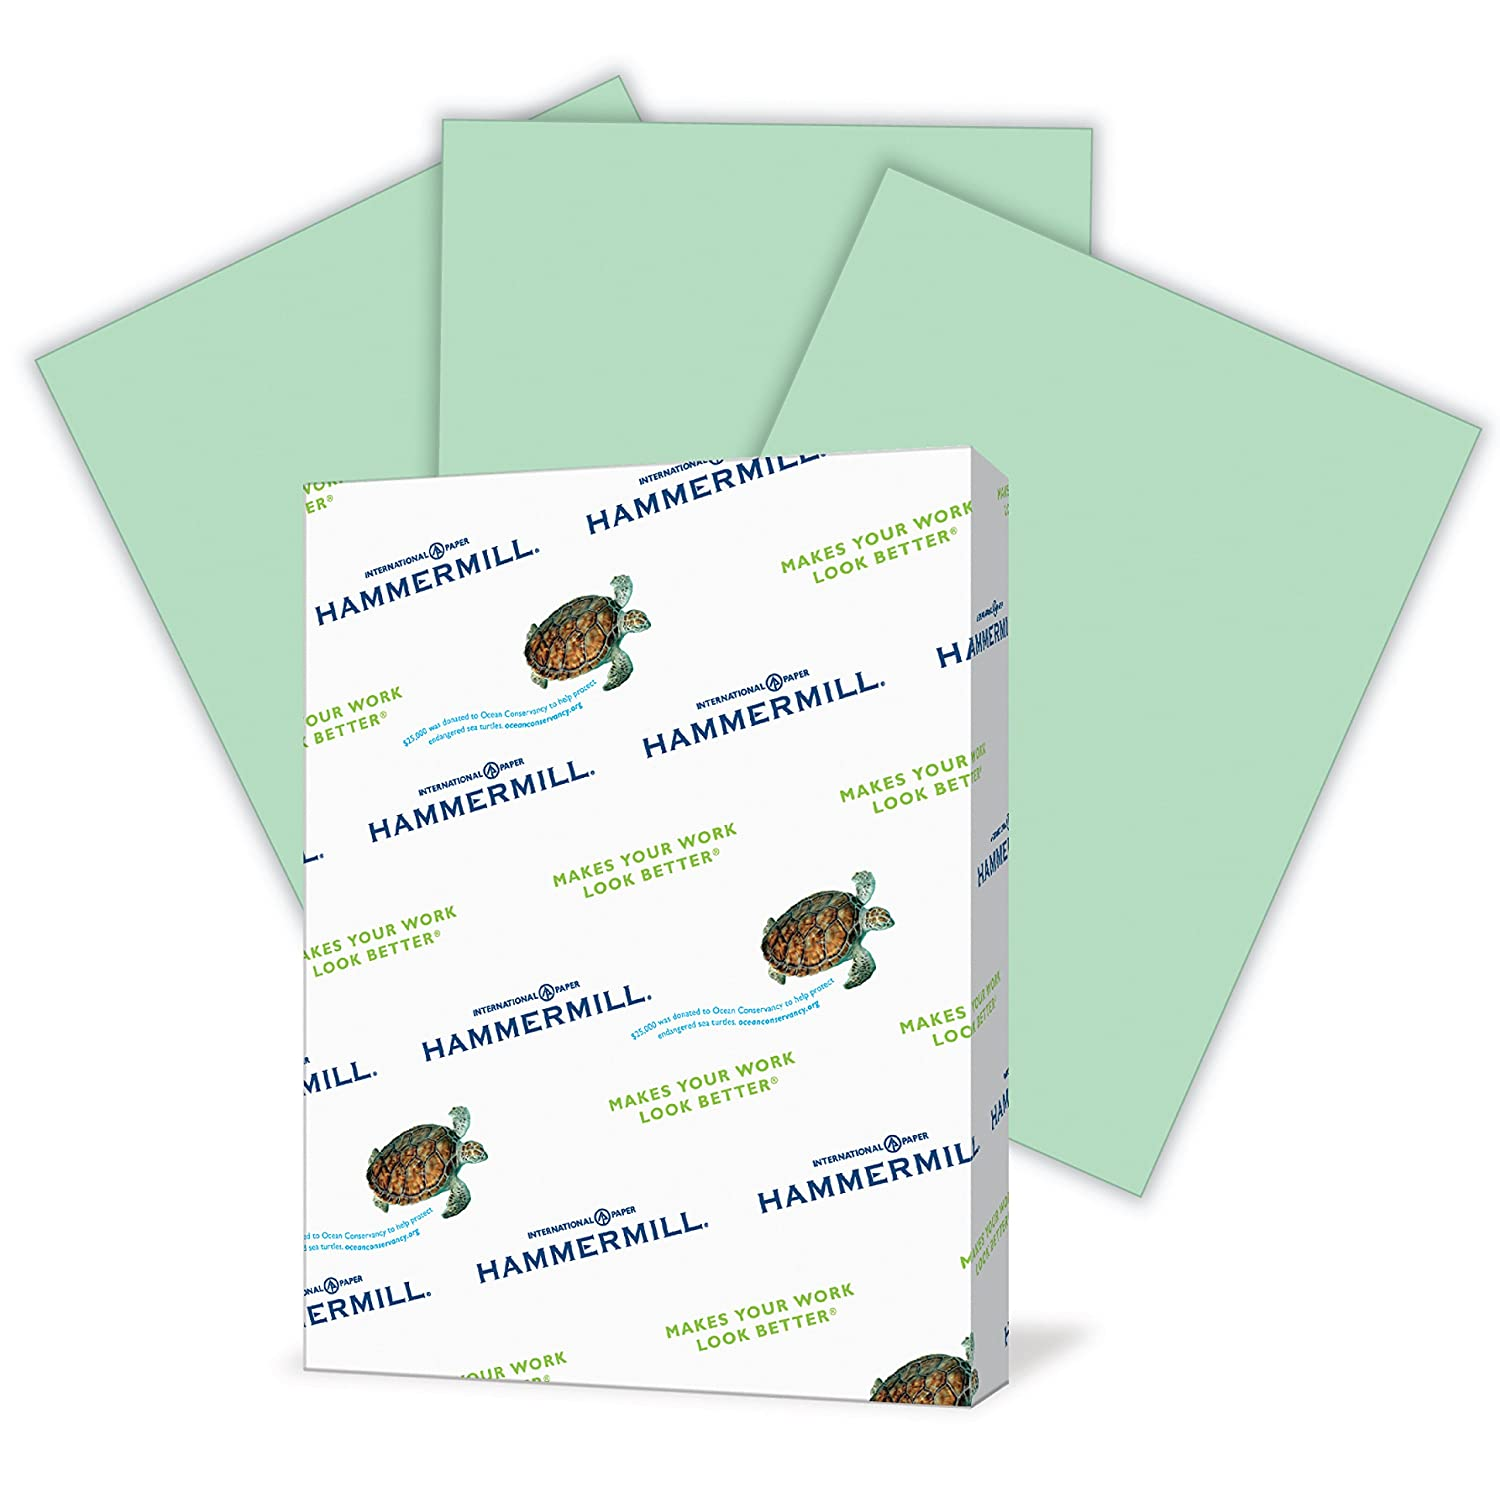 Letter Size 3 Hole Punch 8.5x11 Paper 5000 Sheets // 10 Ream Case Pastel Paper Canary Printer Paper Hammermill Colored Paper Colorful Paper 102921C 20lb